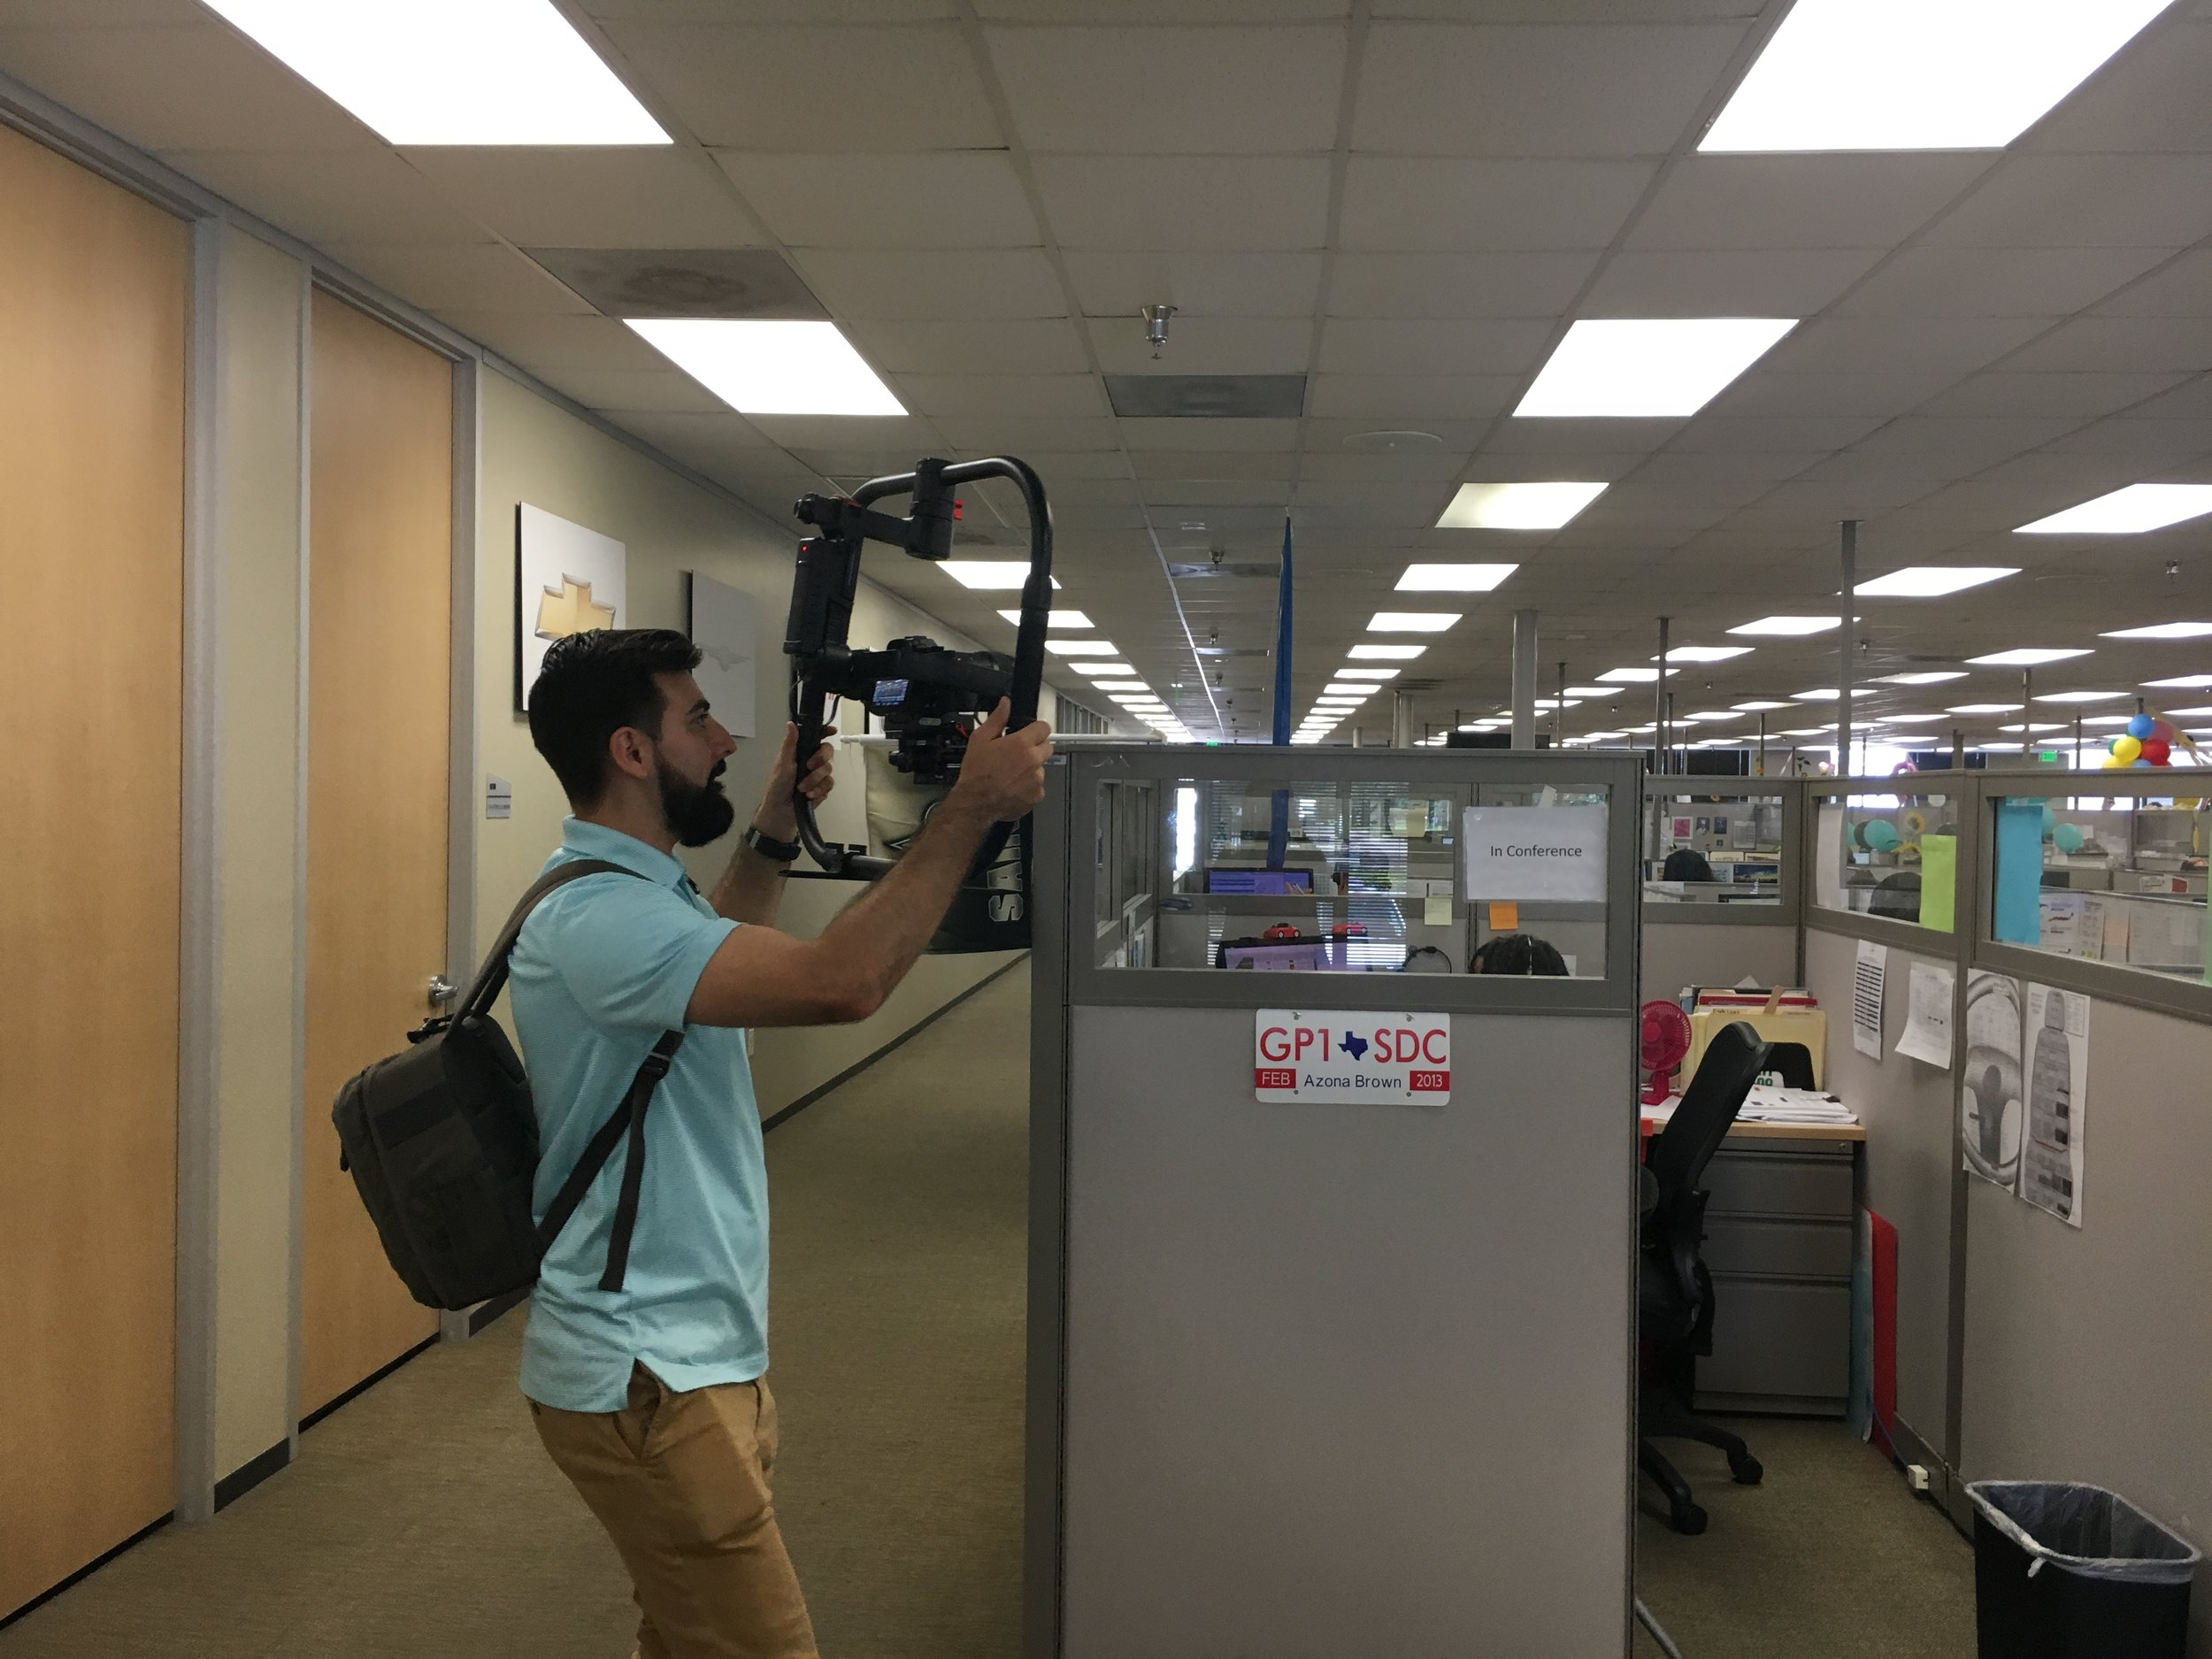 Behind the scenes! Our video ninja filming B-roll of the offices.